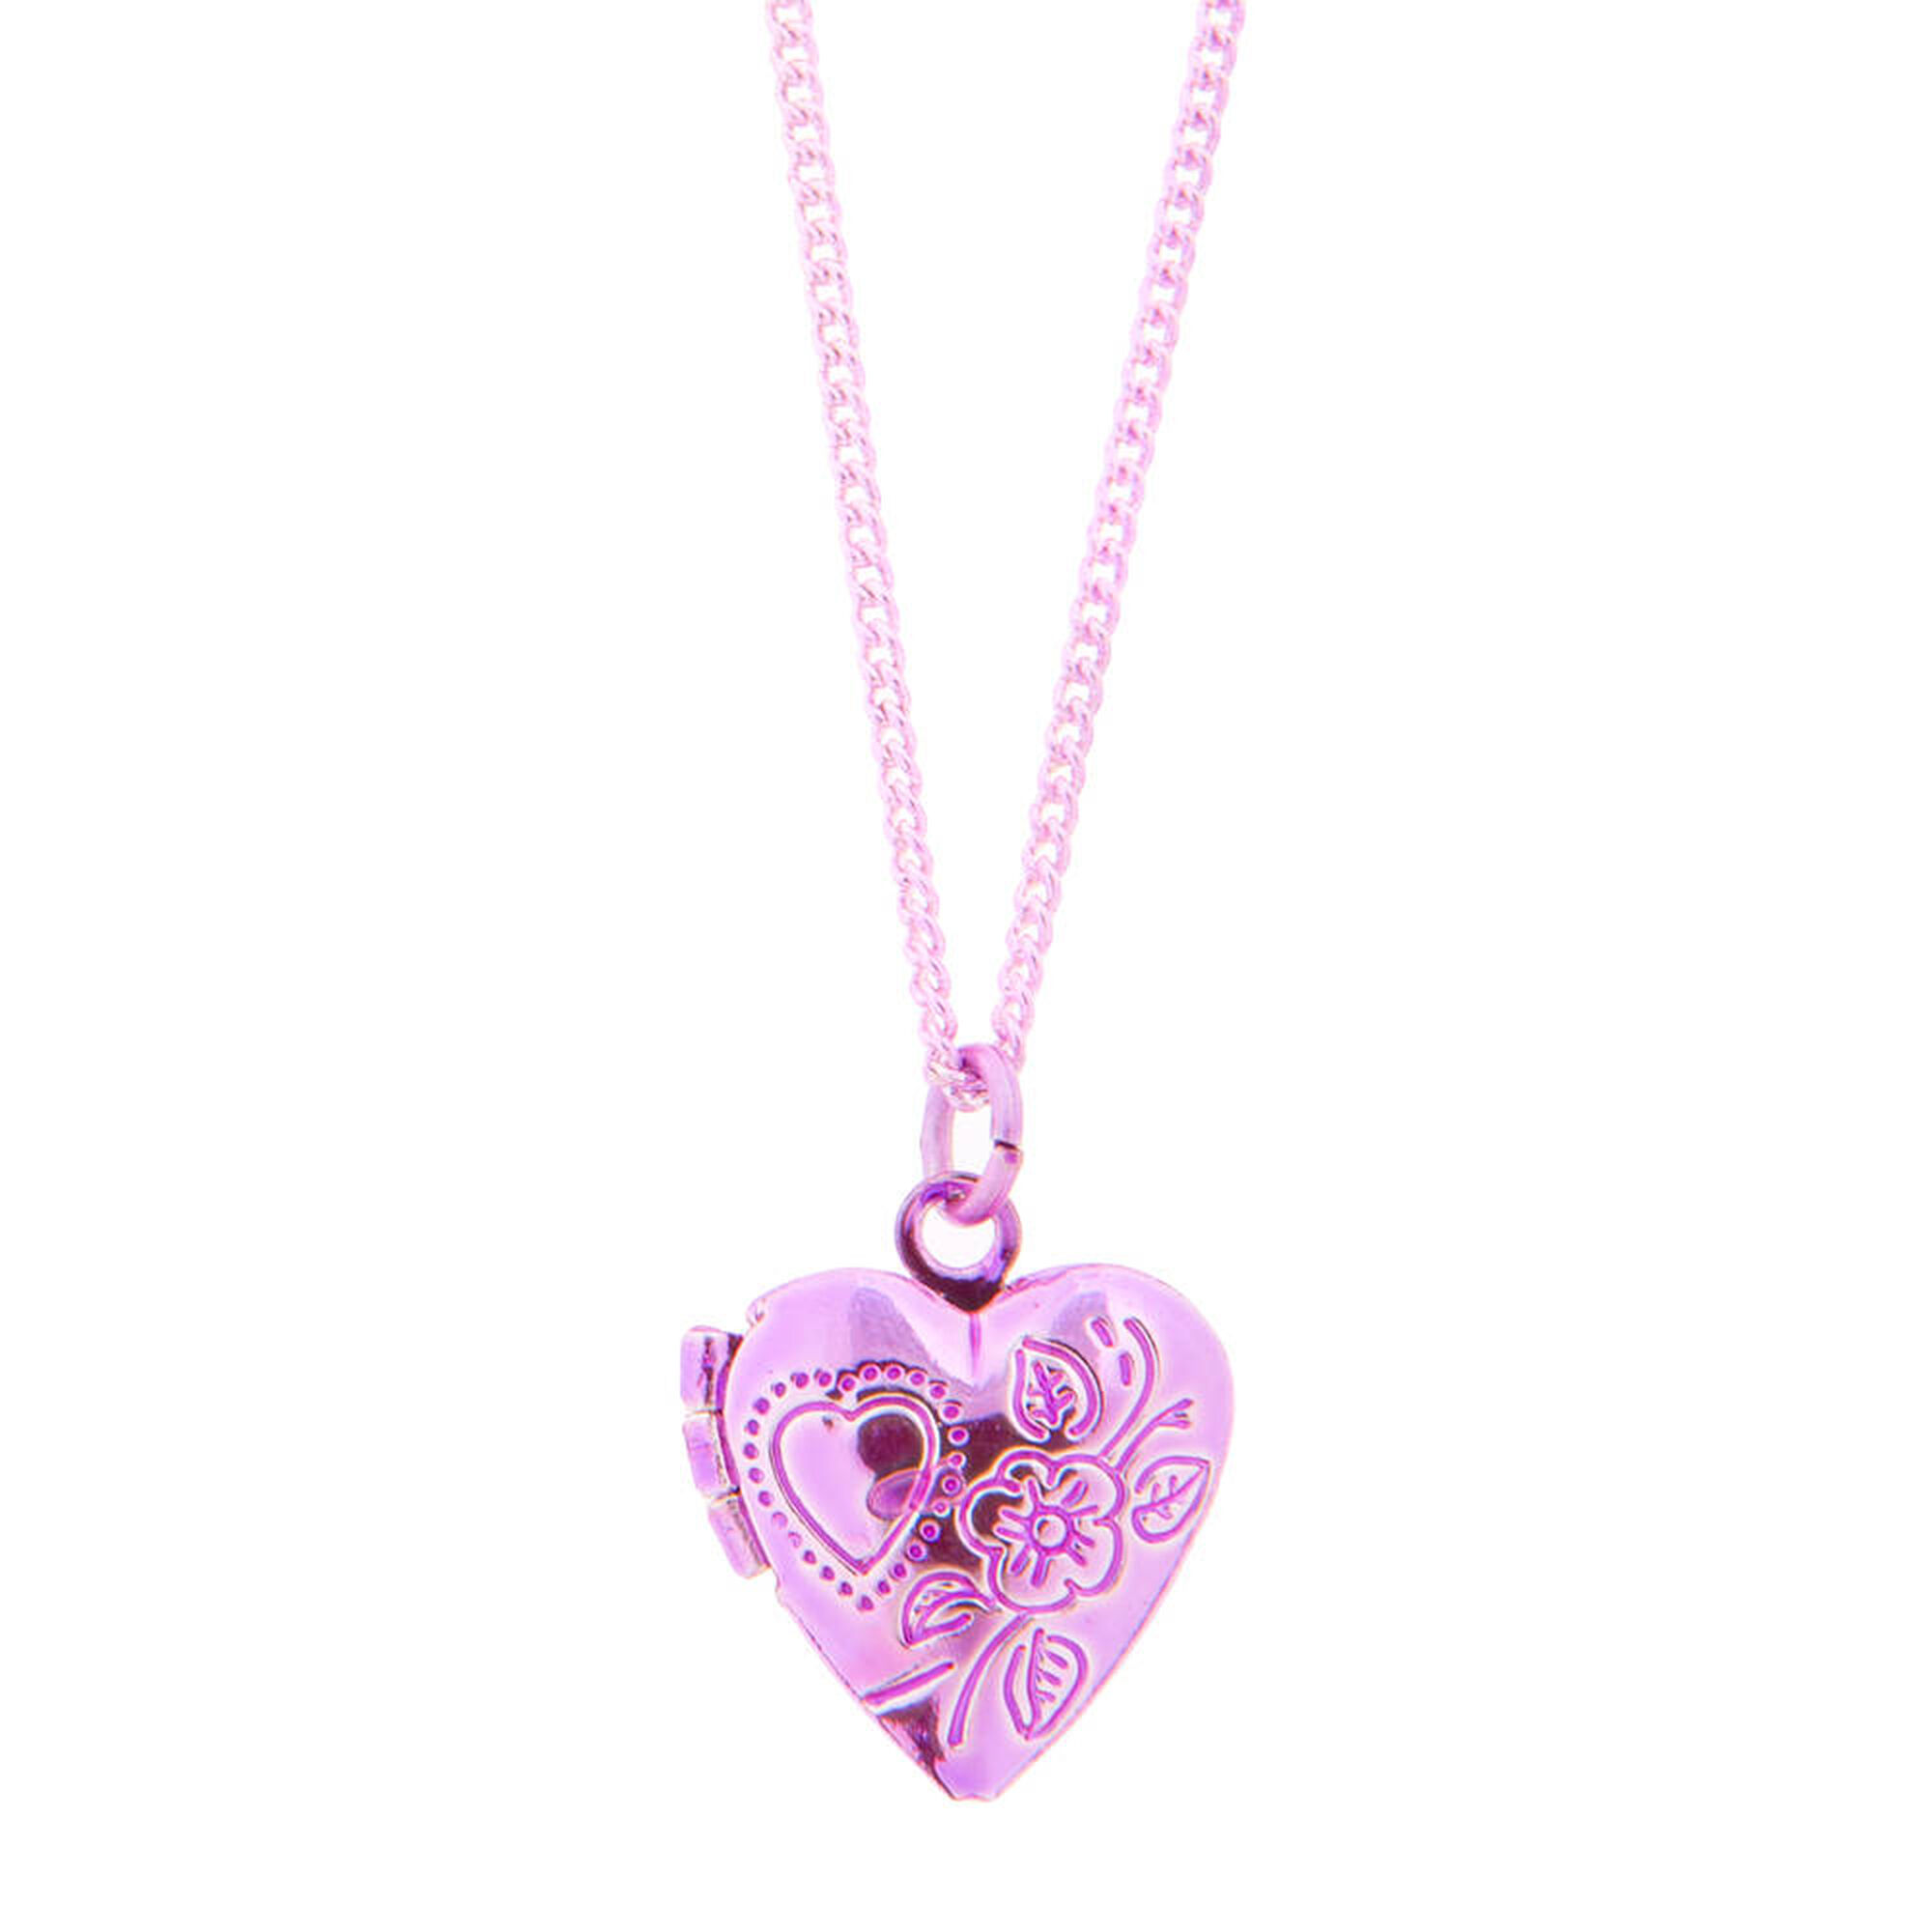 Kids pink heart locket pendant necklace claires us kids pink heart locket pendant necklace aloadofball Image collections